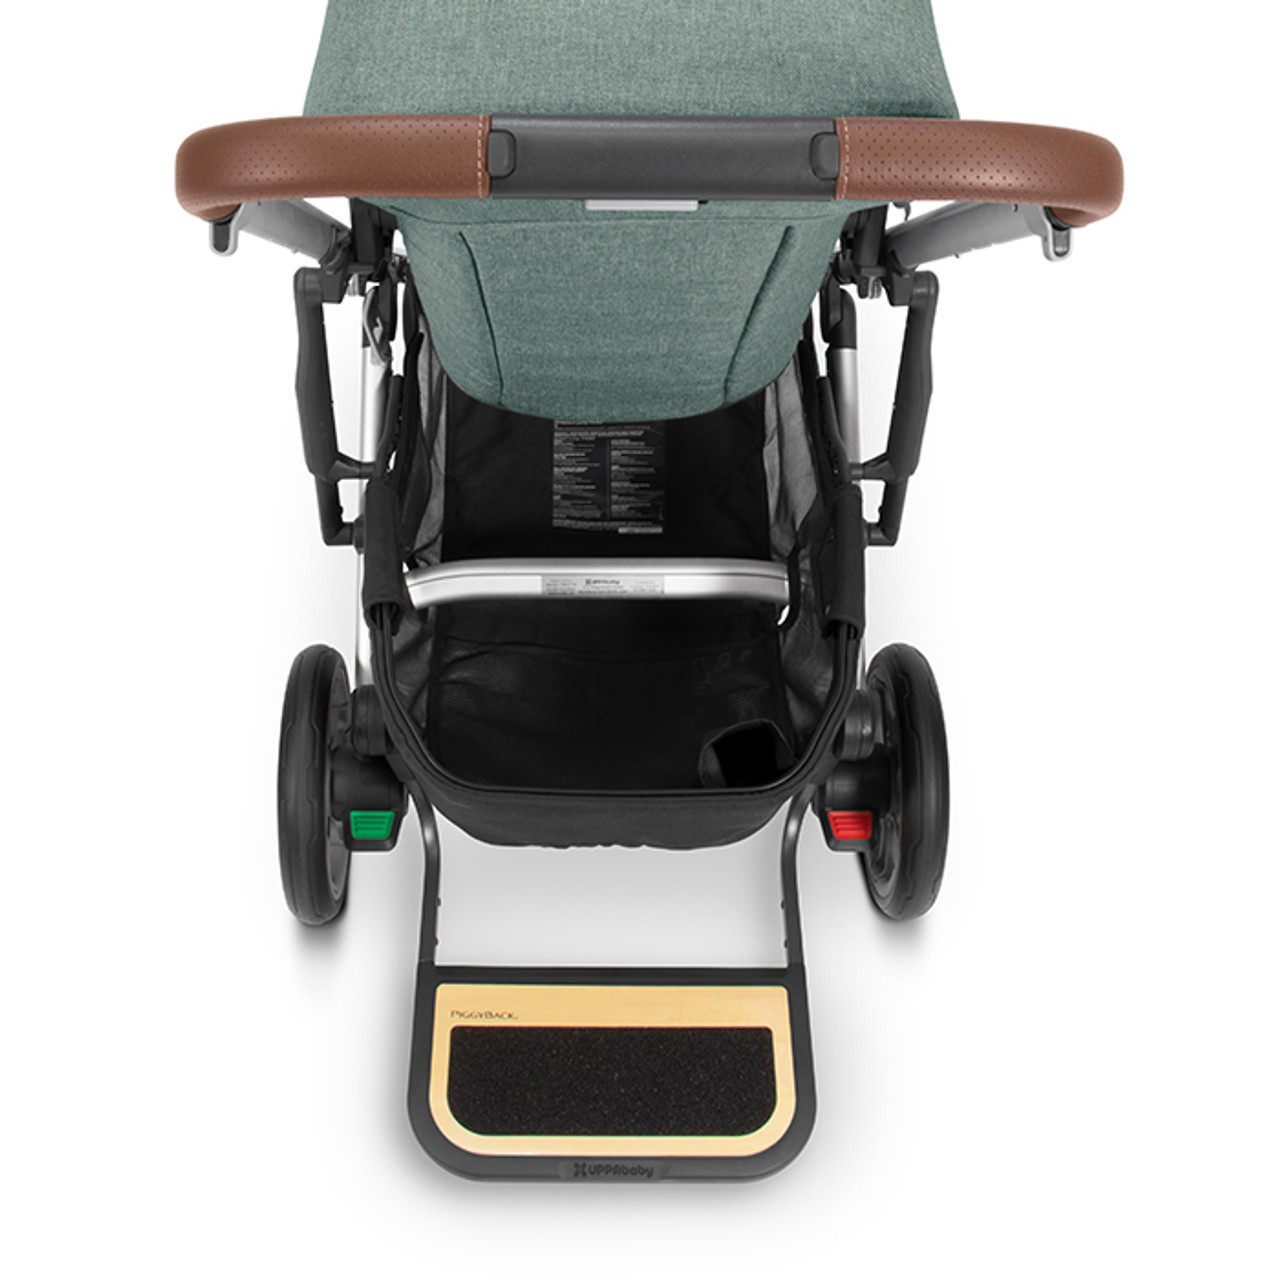 UPPAbaby CRUZ V2 PiggyBack Ride-Along Board at Baby Barn Discounts The PiggyBack attaches easily to your pram, allowing your little one to hitch a ride when they get tired.